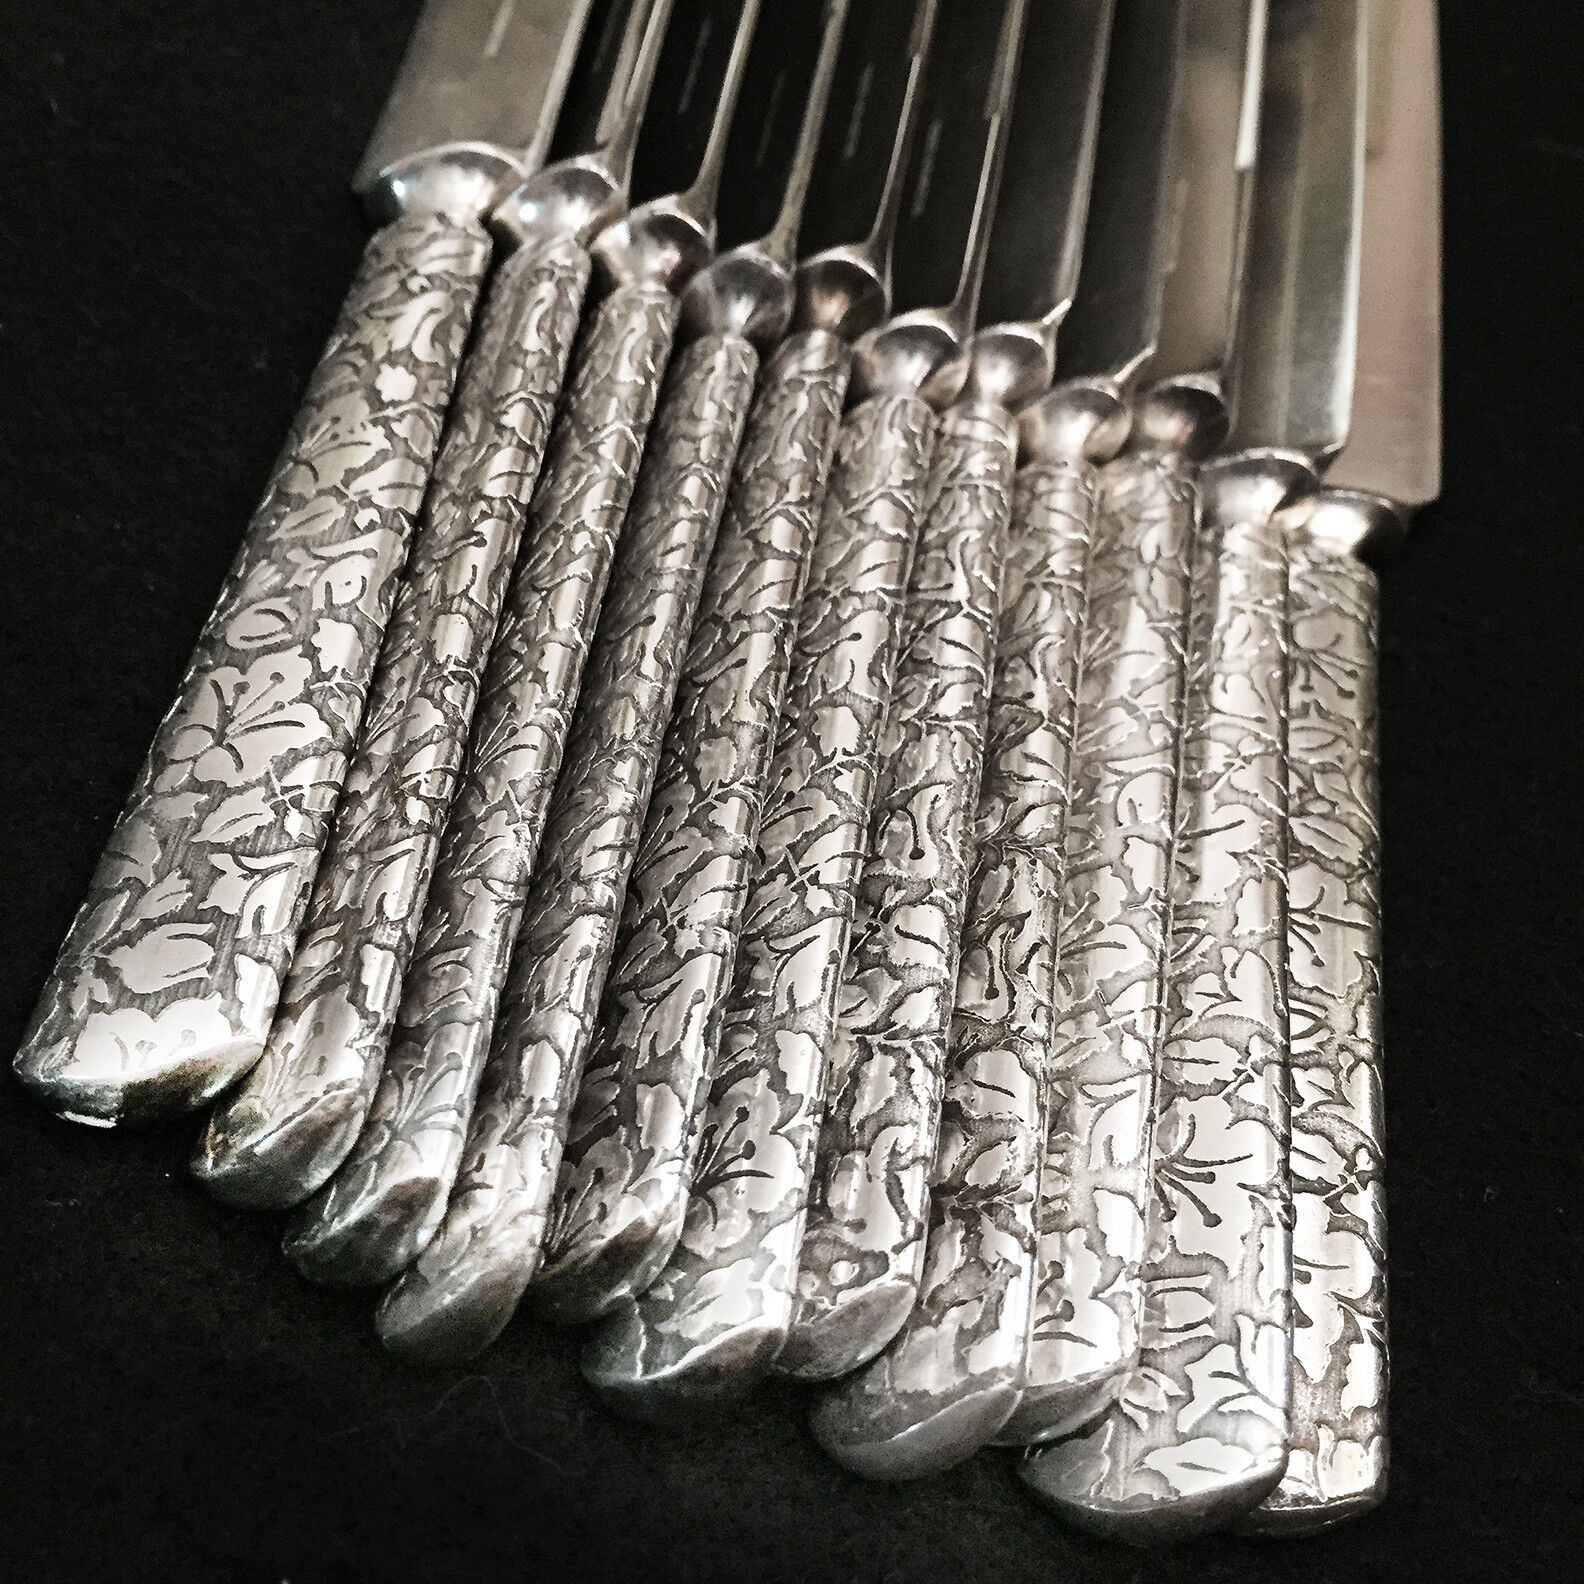 RARE - Reed Barton BROCADE 1870 - 11pc Silverplate Blunt Solid Dinner Knives - $175.00